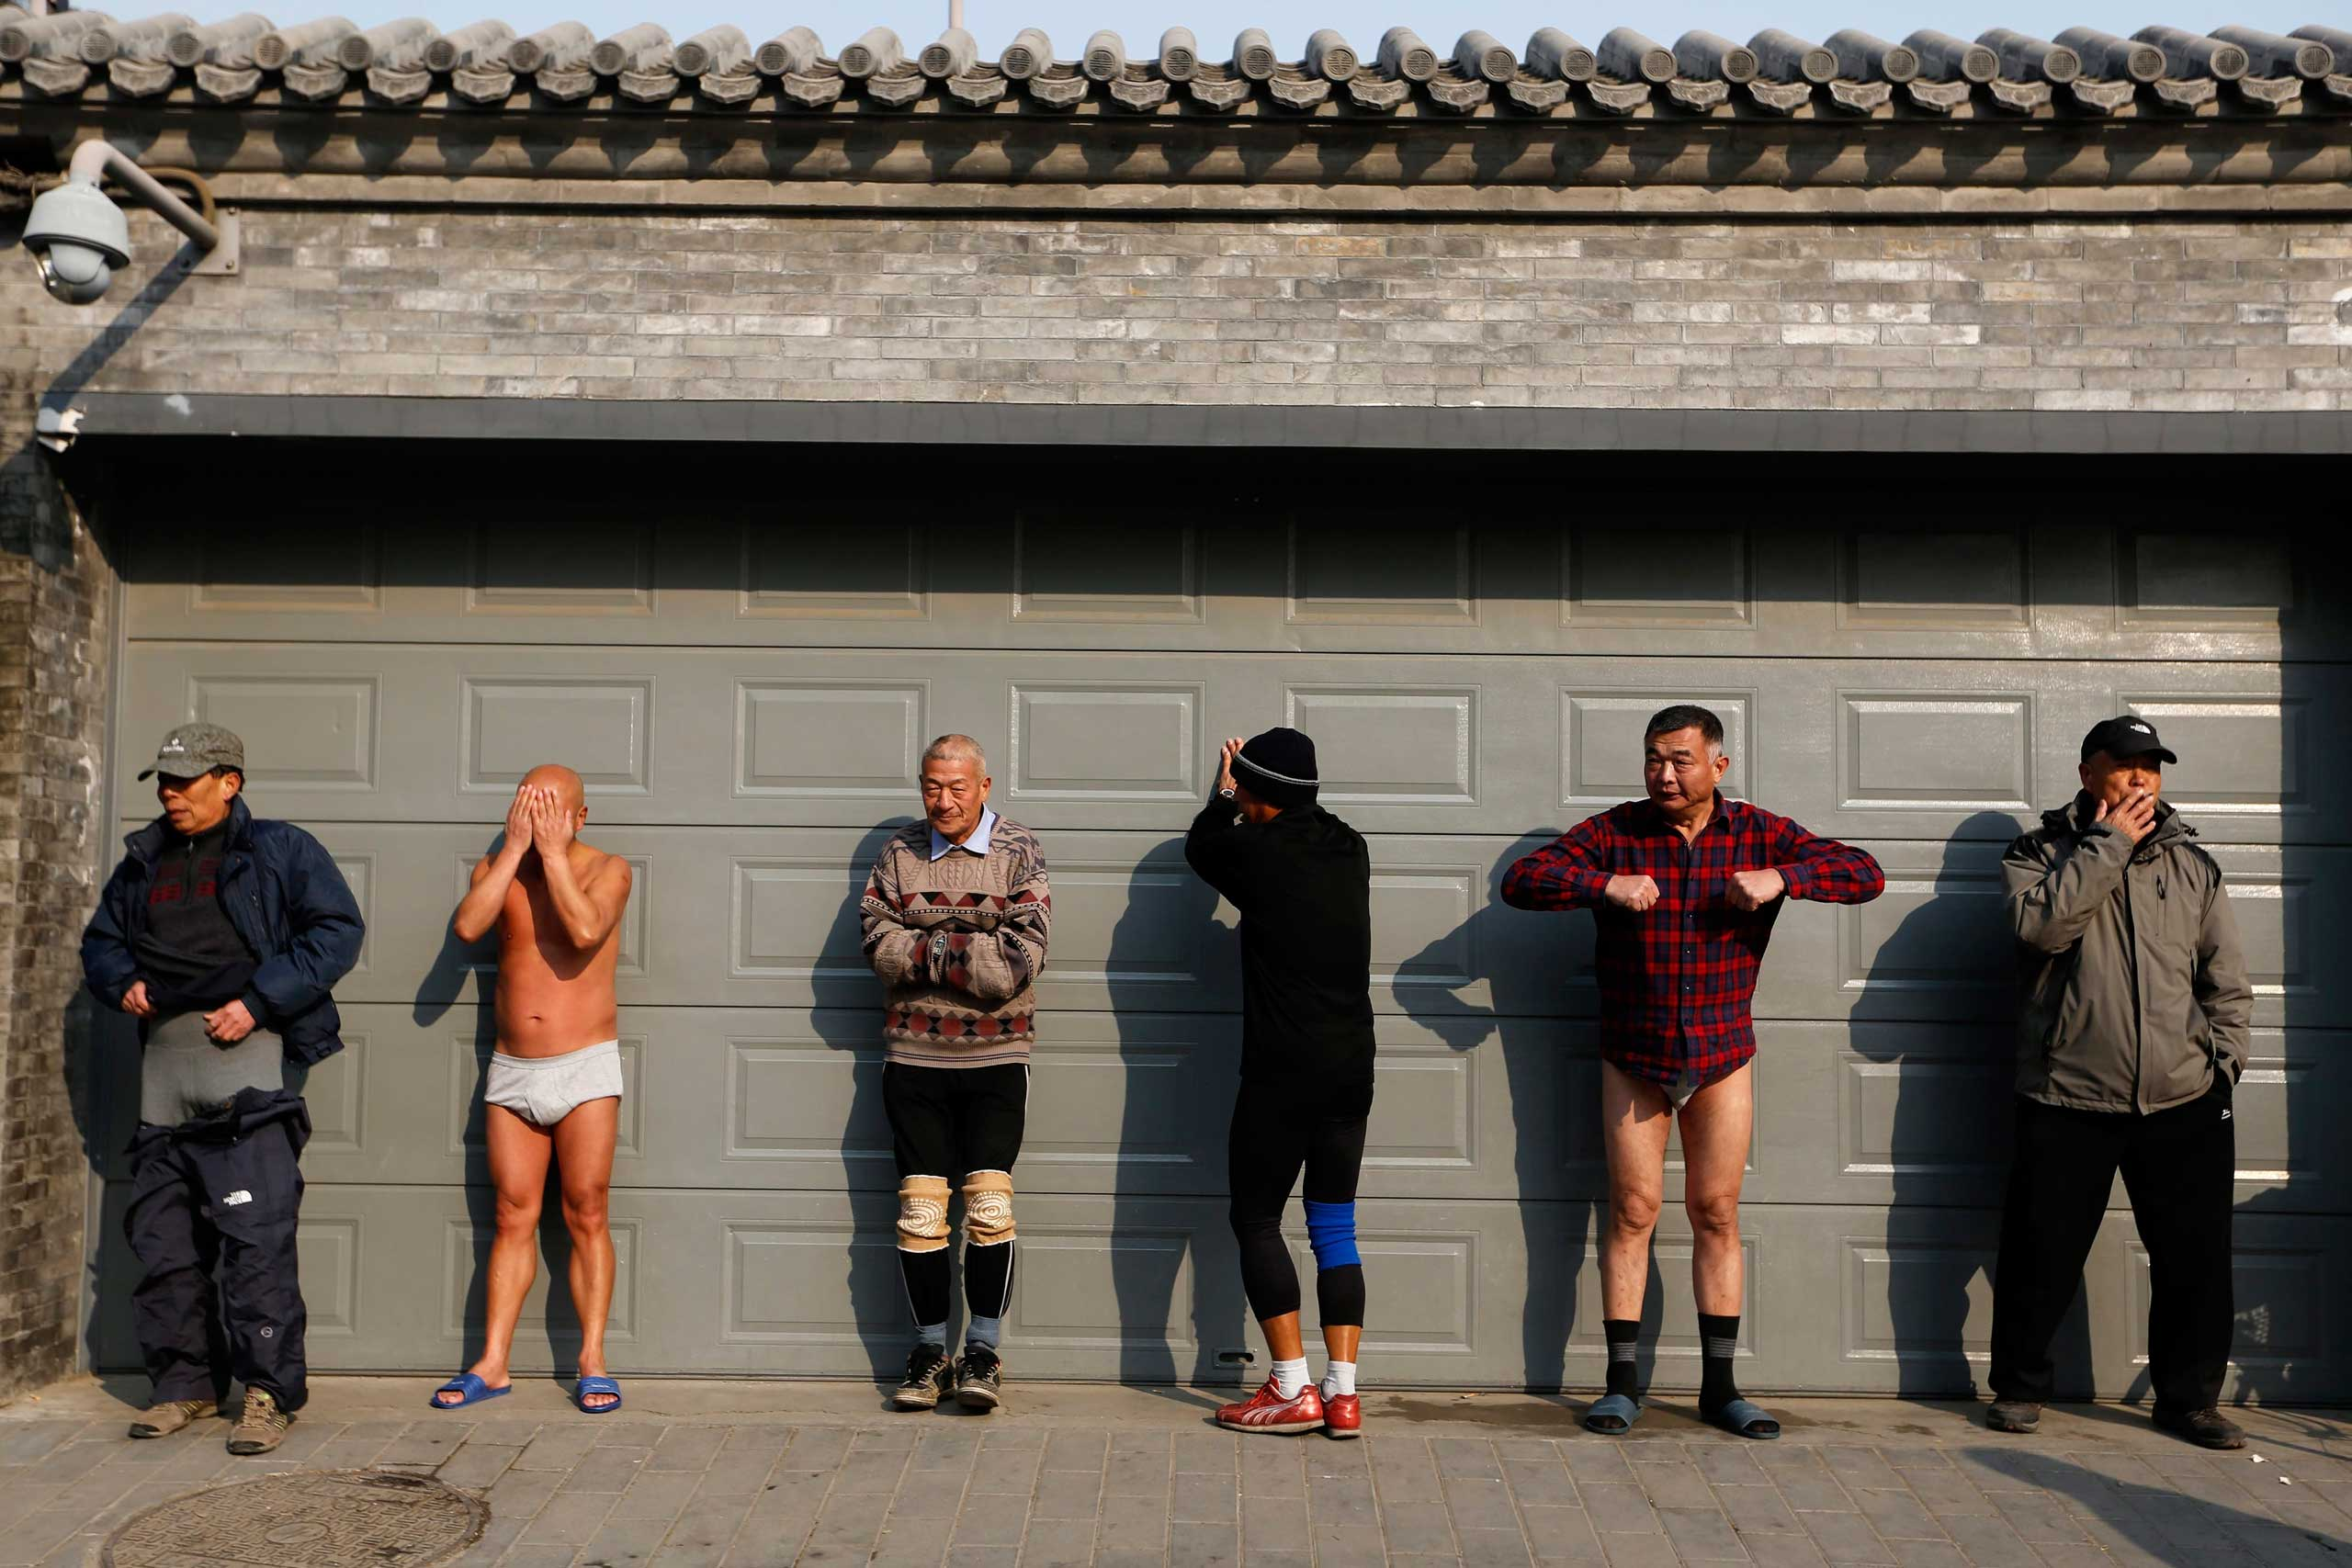 Jan. 12, 2015. Chinese winter swimming enthusiasts warm up before swimming in the half-frozen Houhai lake with a water temperature around 36 fahrenheit  in Beijing.